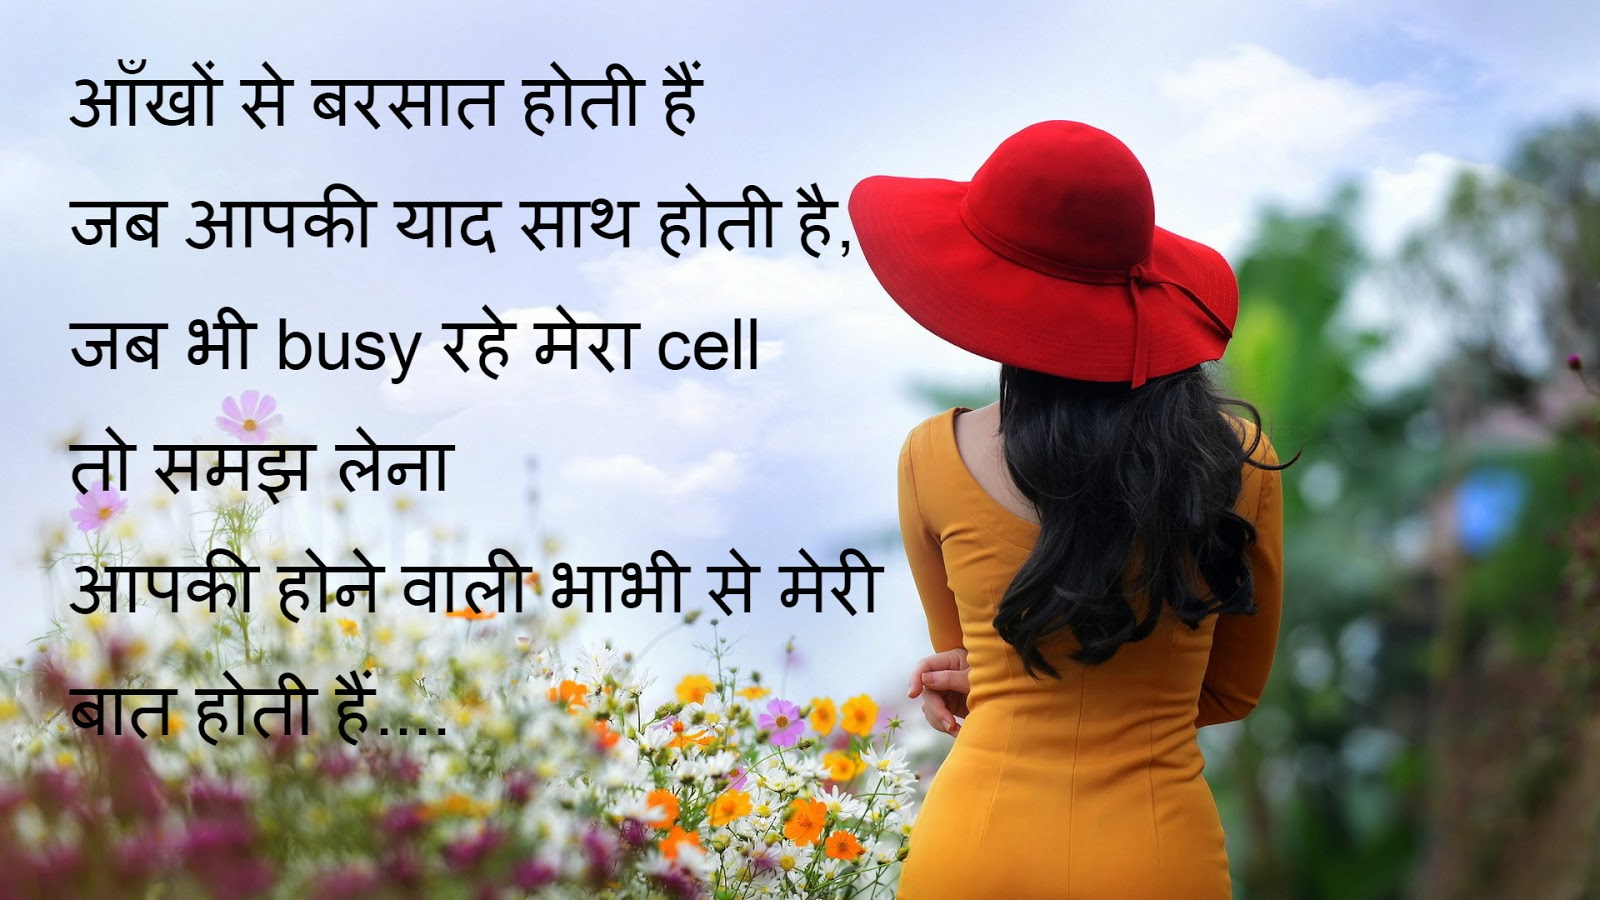 Love Shayari Image Hd Download Real Fact Wallpapers And Pictures